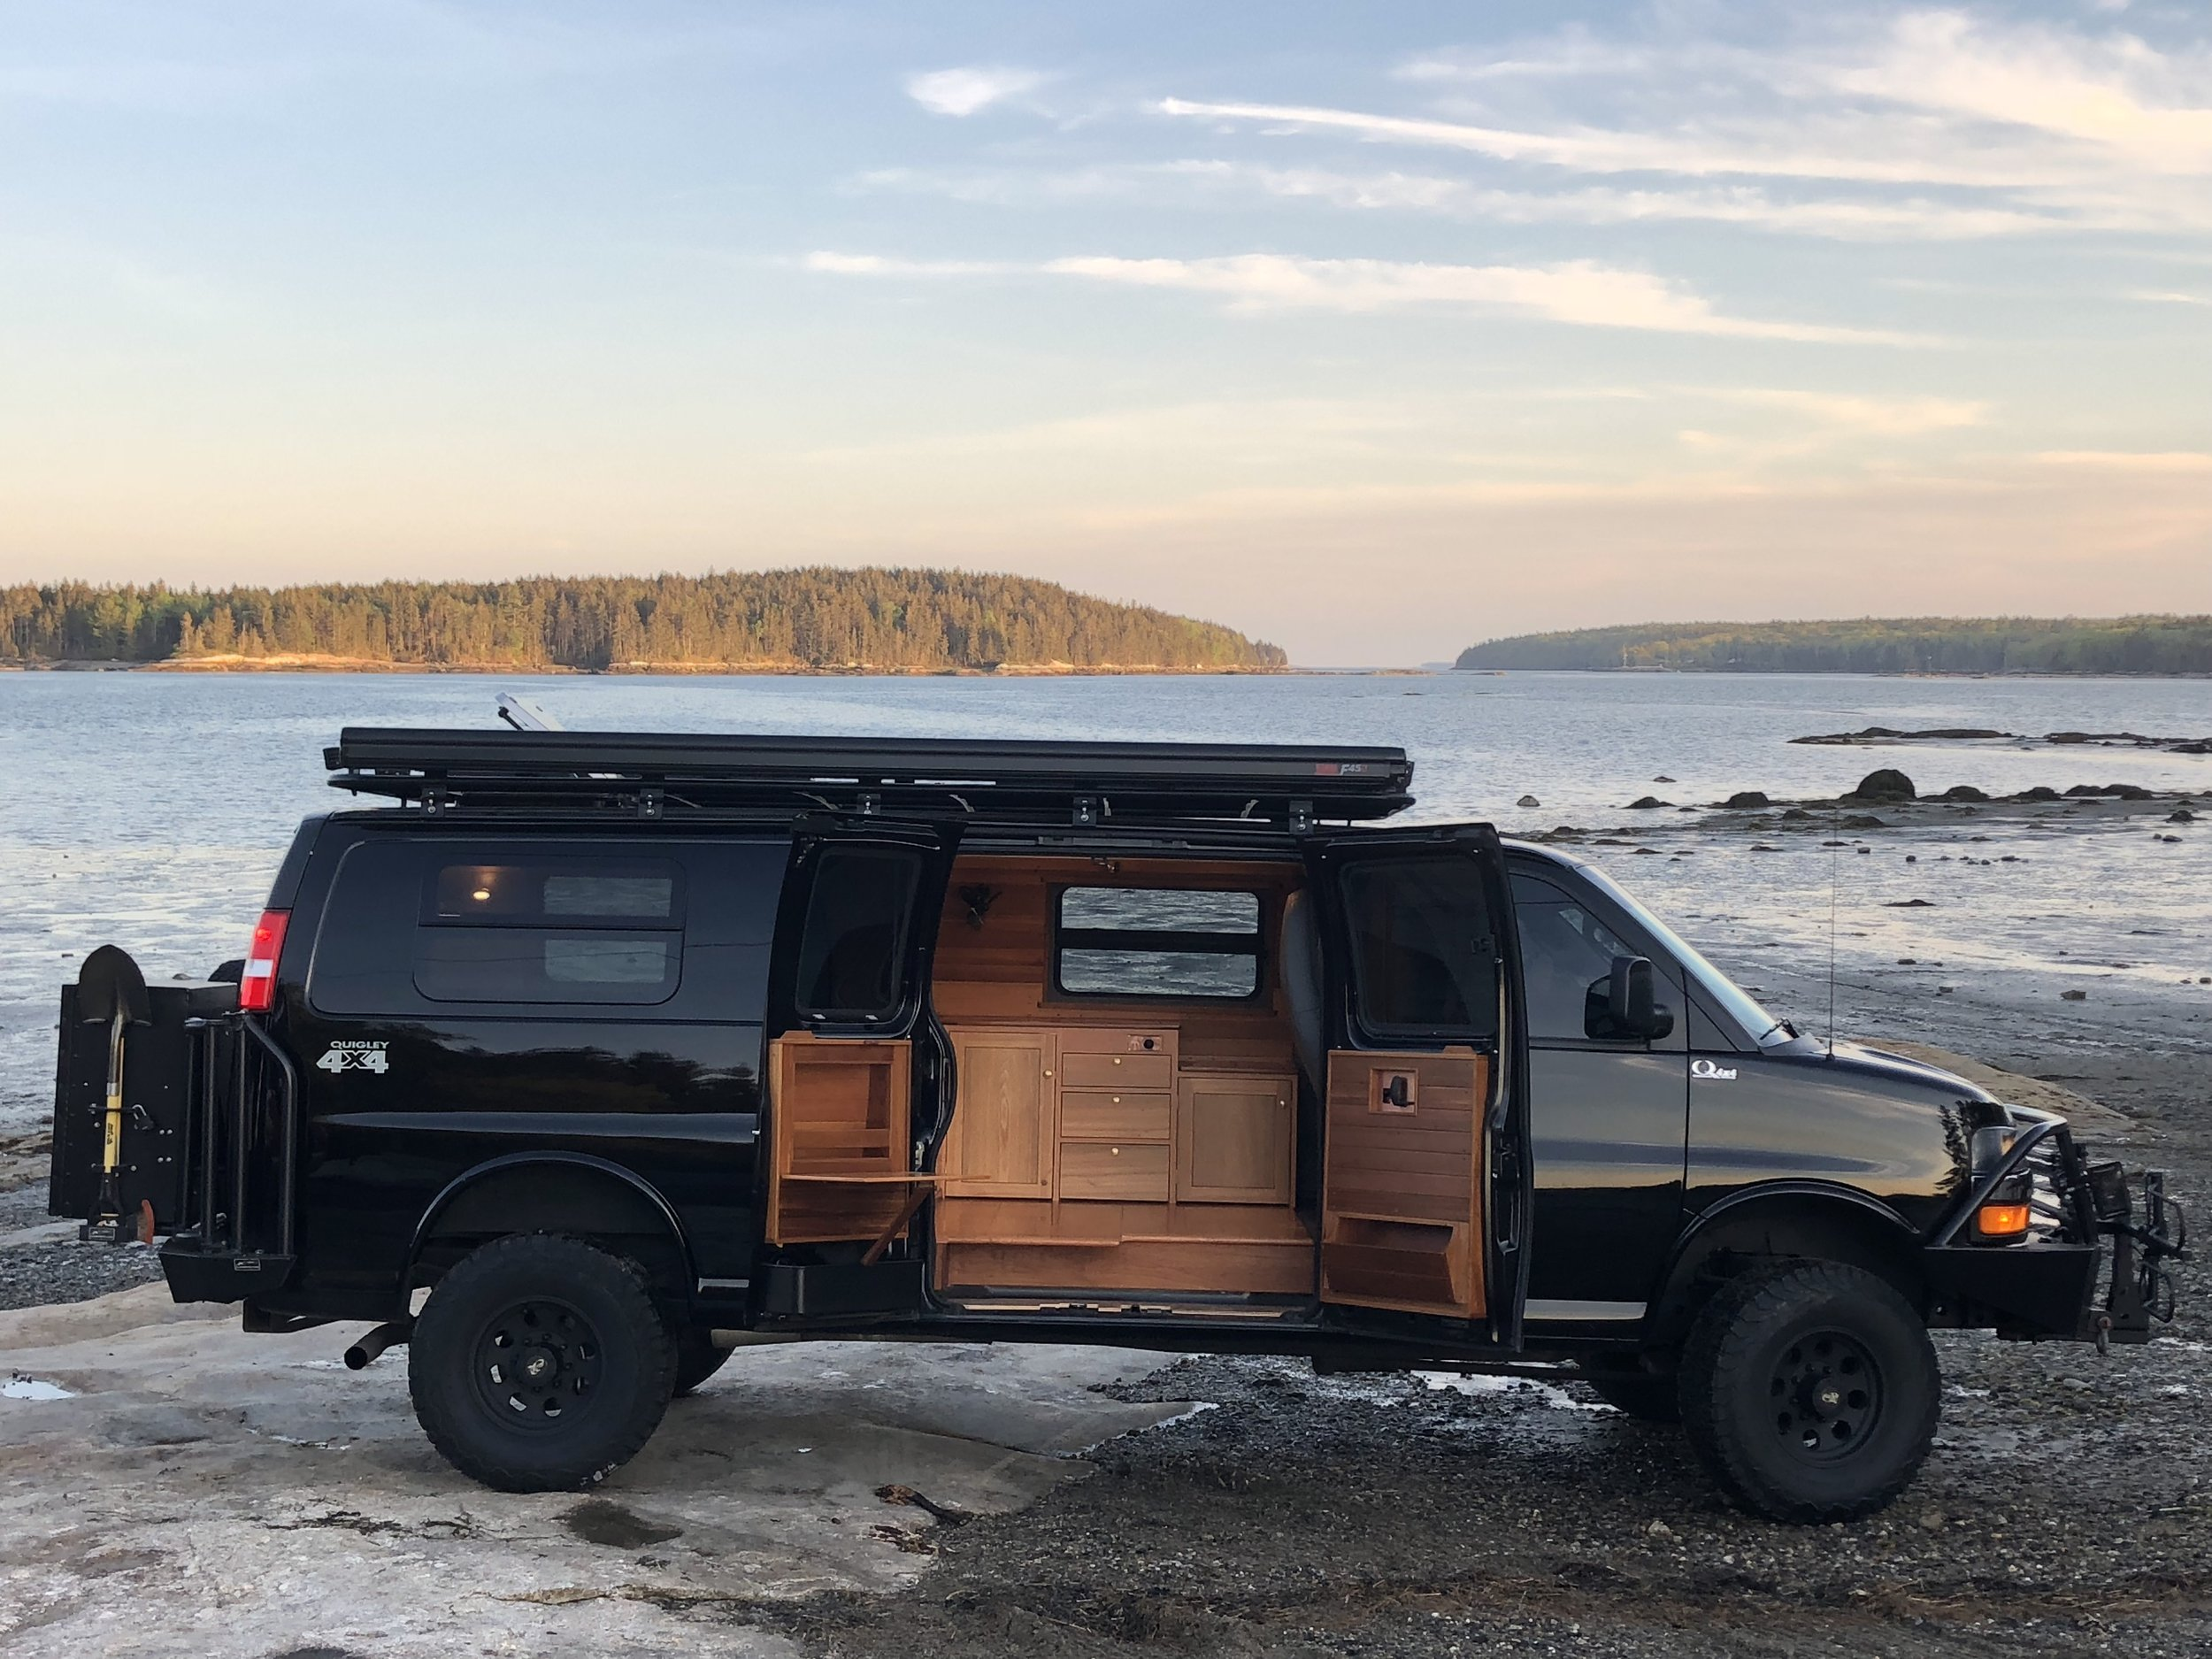 GMC cargo van, Jinx. (Photo courtesy of Eli Ellis/ AWOL Adventure Rigs)